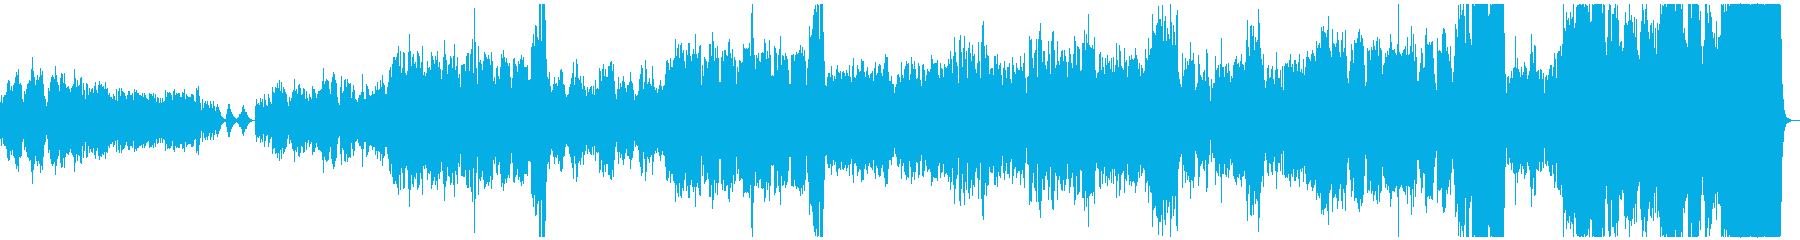 """""""Waltz of the Flowers"""" from Tchaikovsky's """"The Nutcracker"""" 's reproduced waveform"""